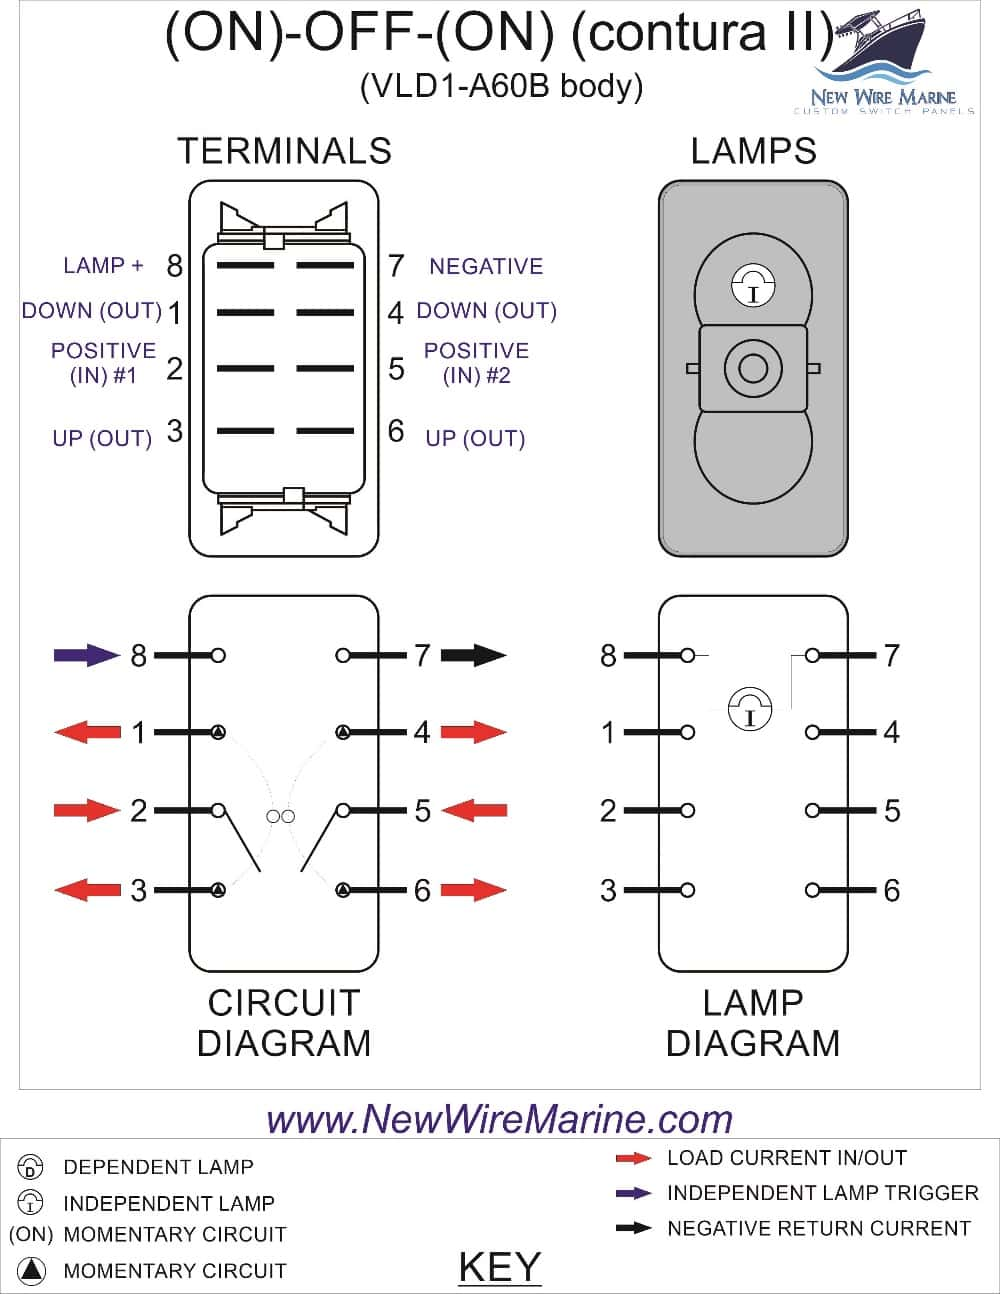 Contura spst switch wiring diagram eliminating headlight push pull spst toggle switch carling contura switch wiring diagram carling carling technologies toggle switch wiring diagram jodebal com on carling